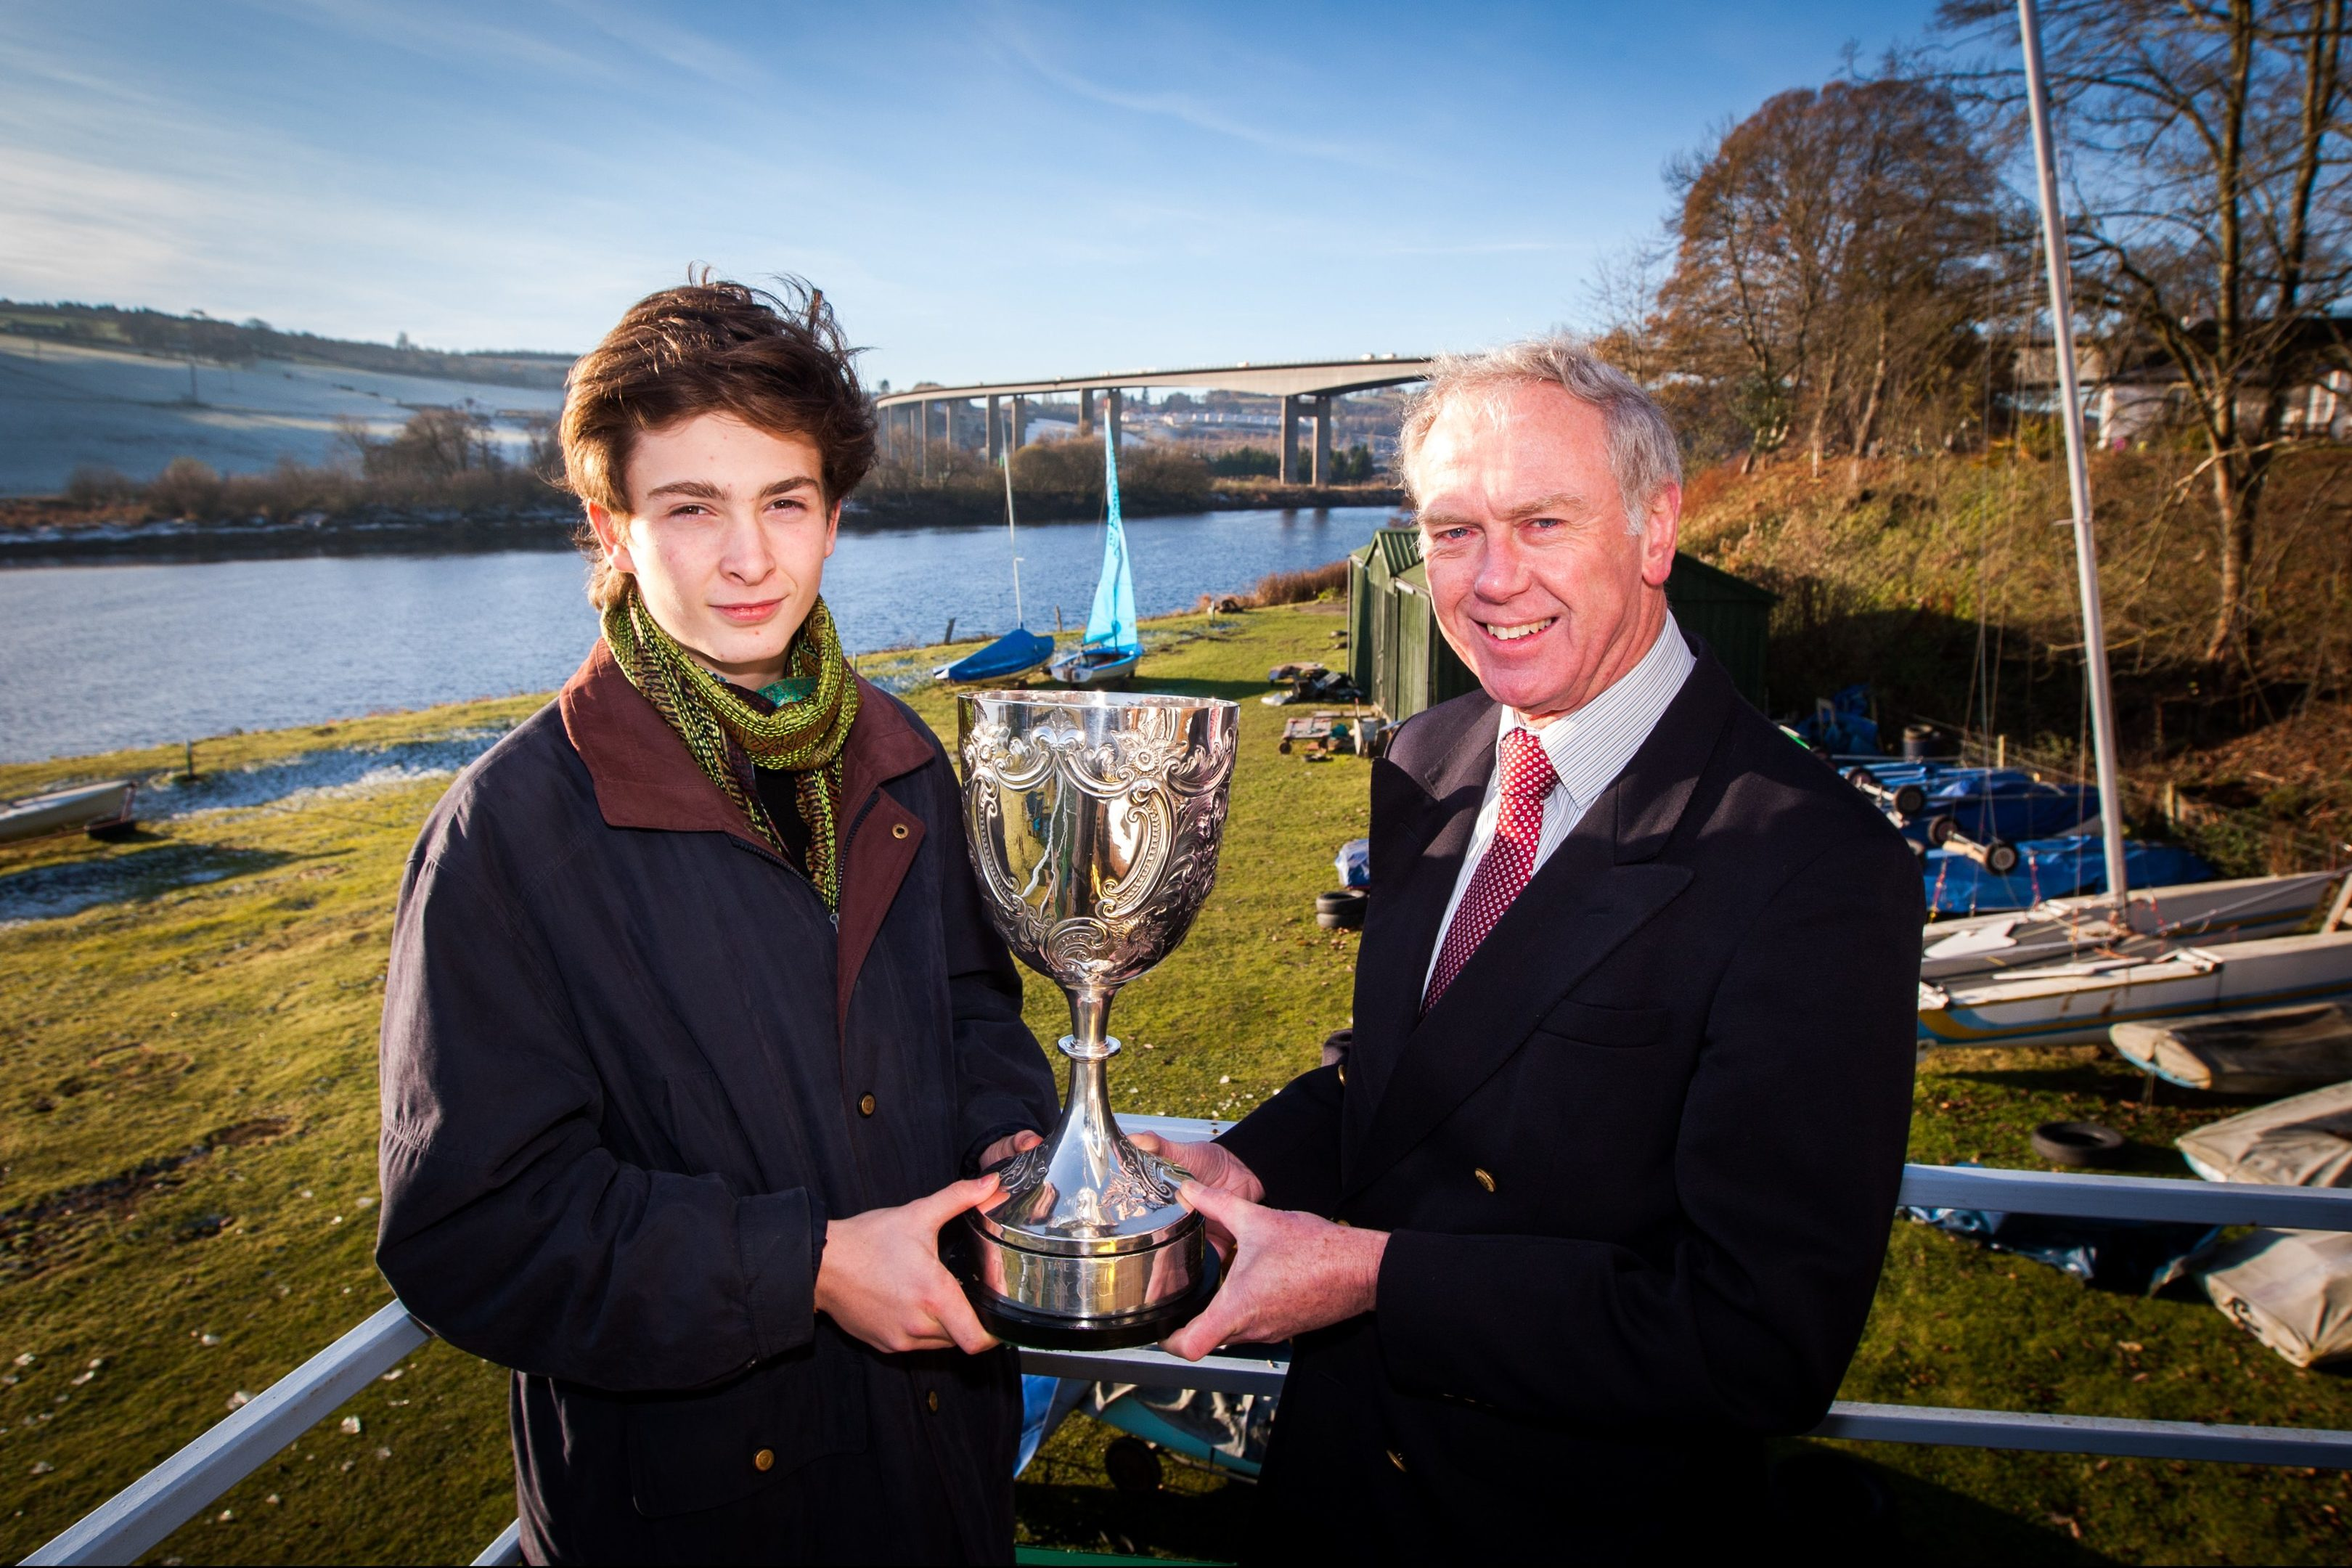 Peter Threipland receiving the Torbay Cup from the Commodore of Perth Sailing Club  Bob Watson.